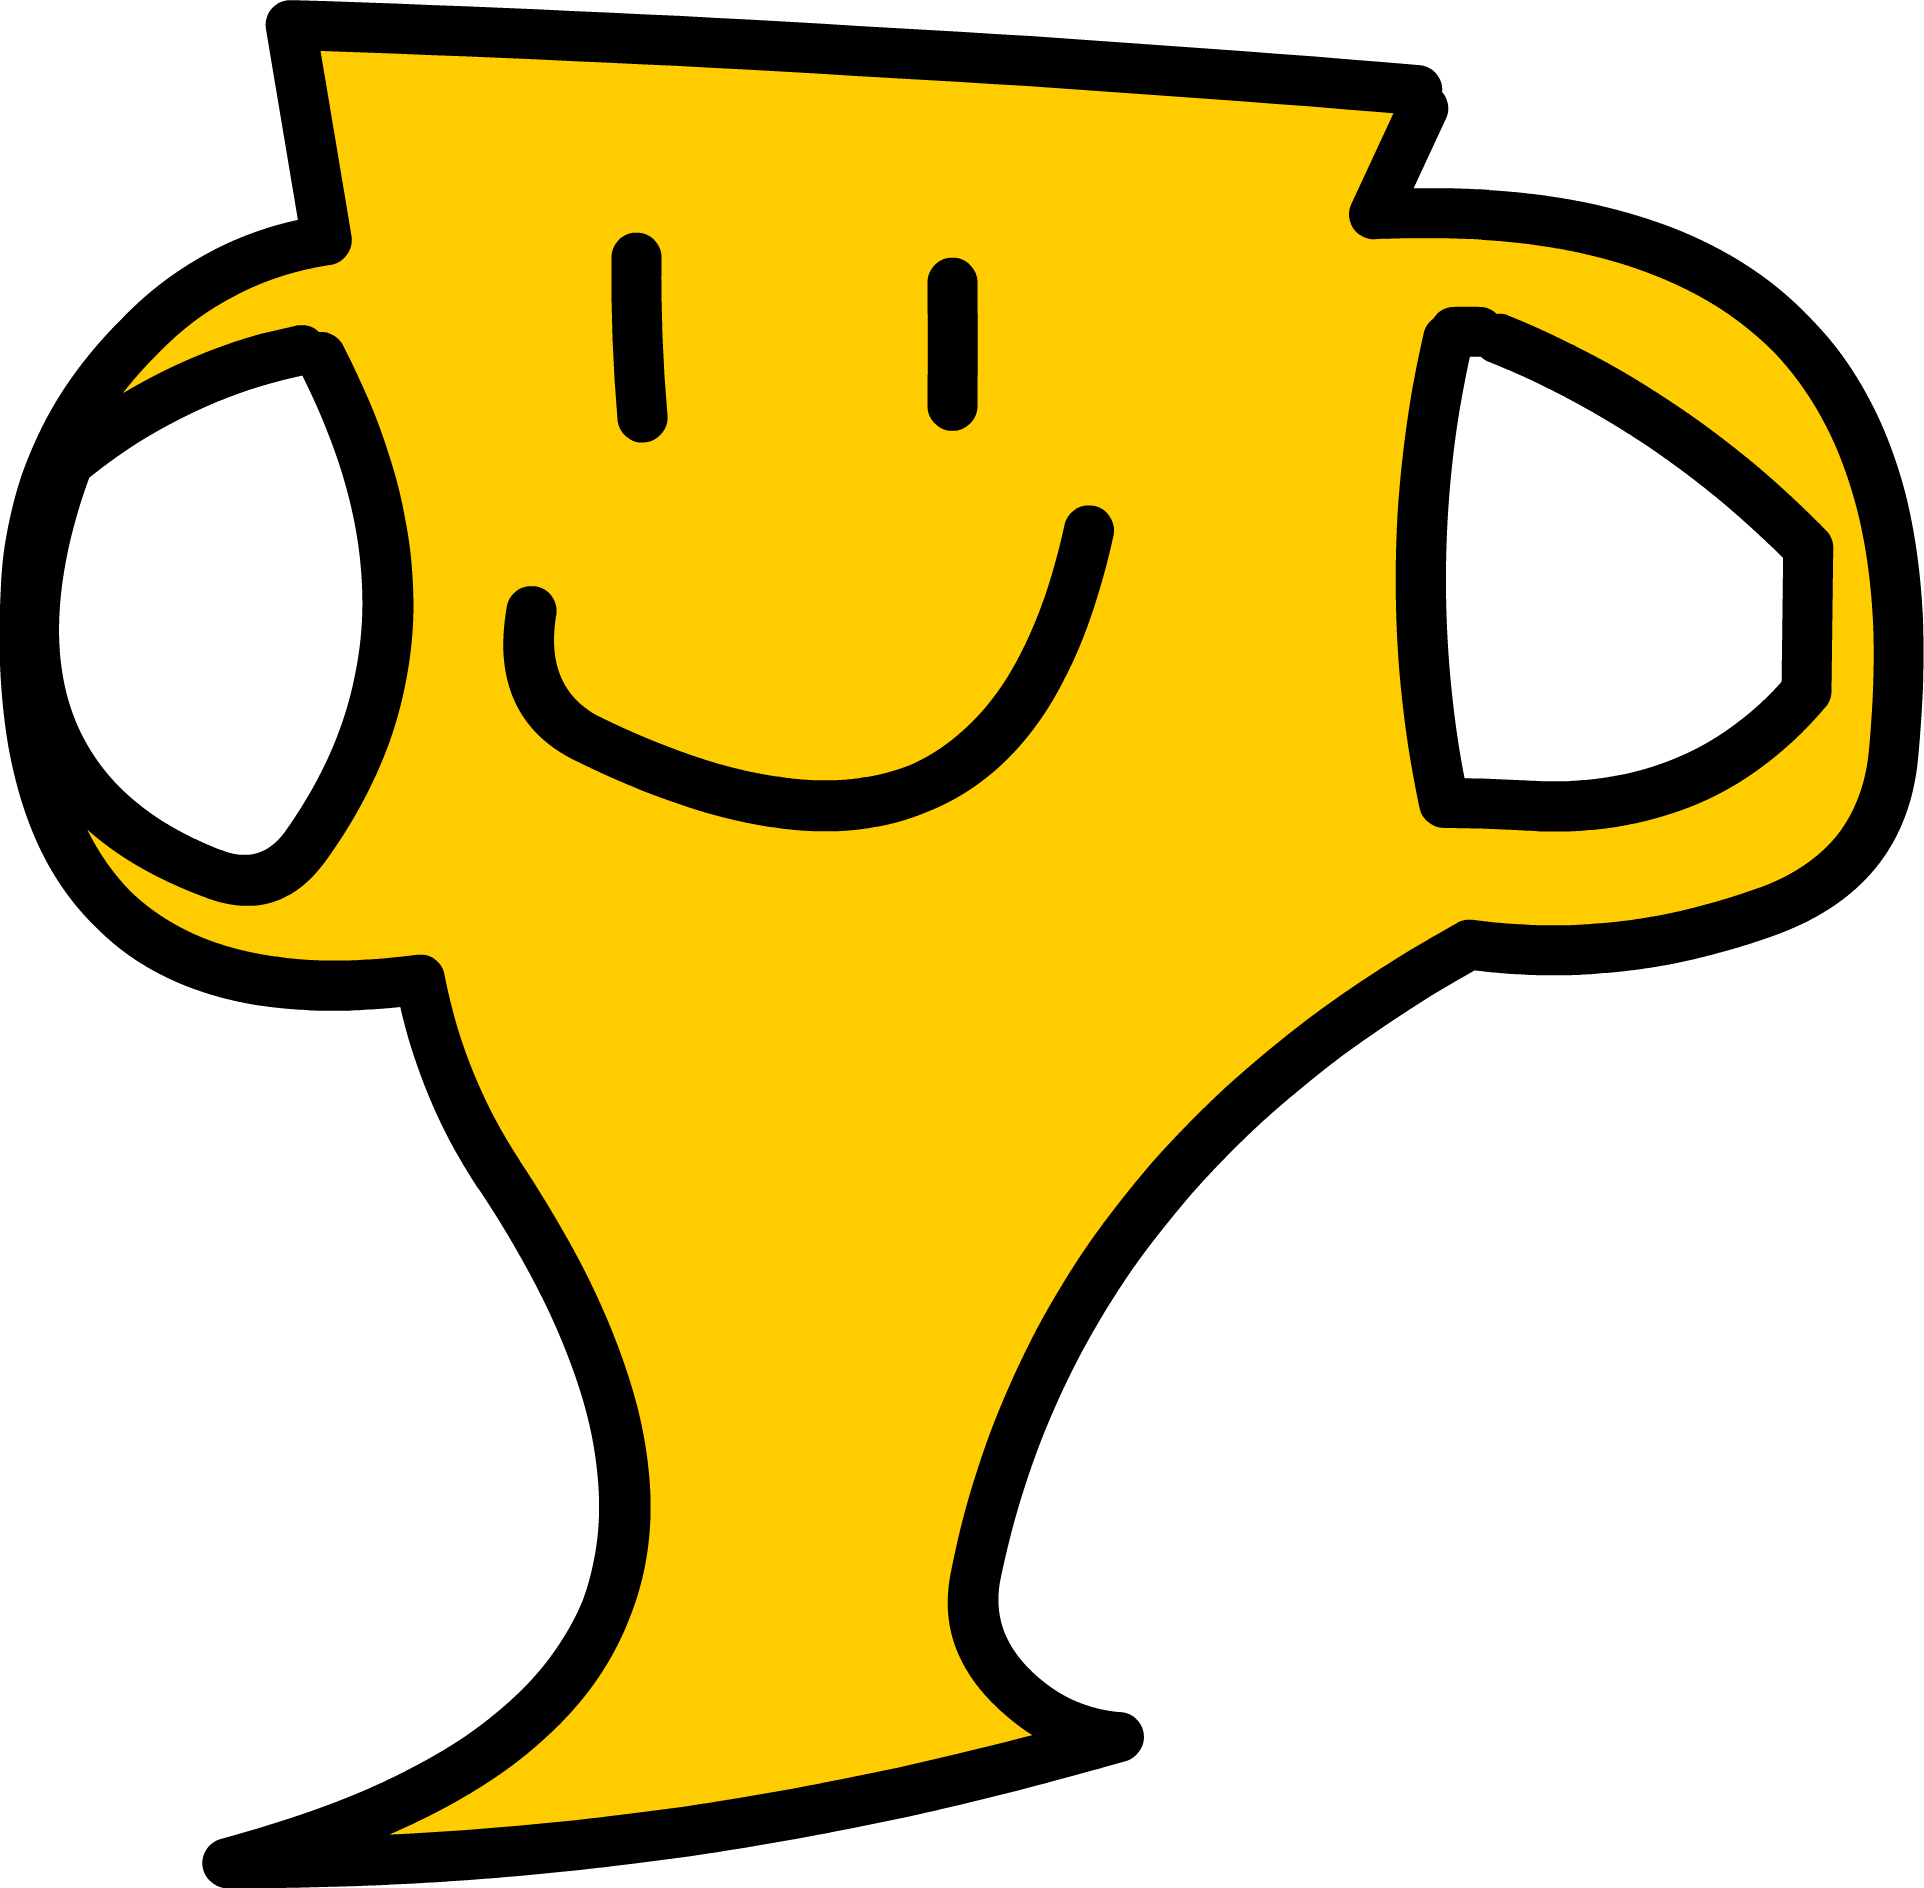 SmileyTrophy BFDI24